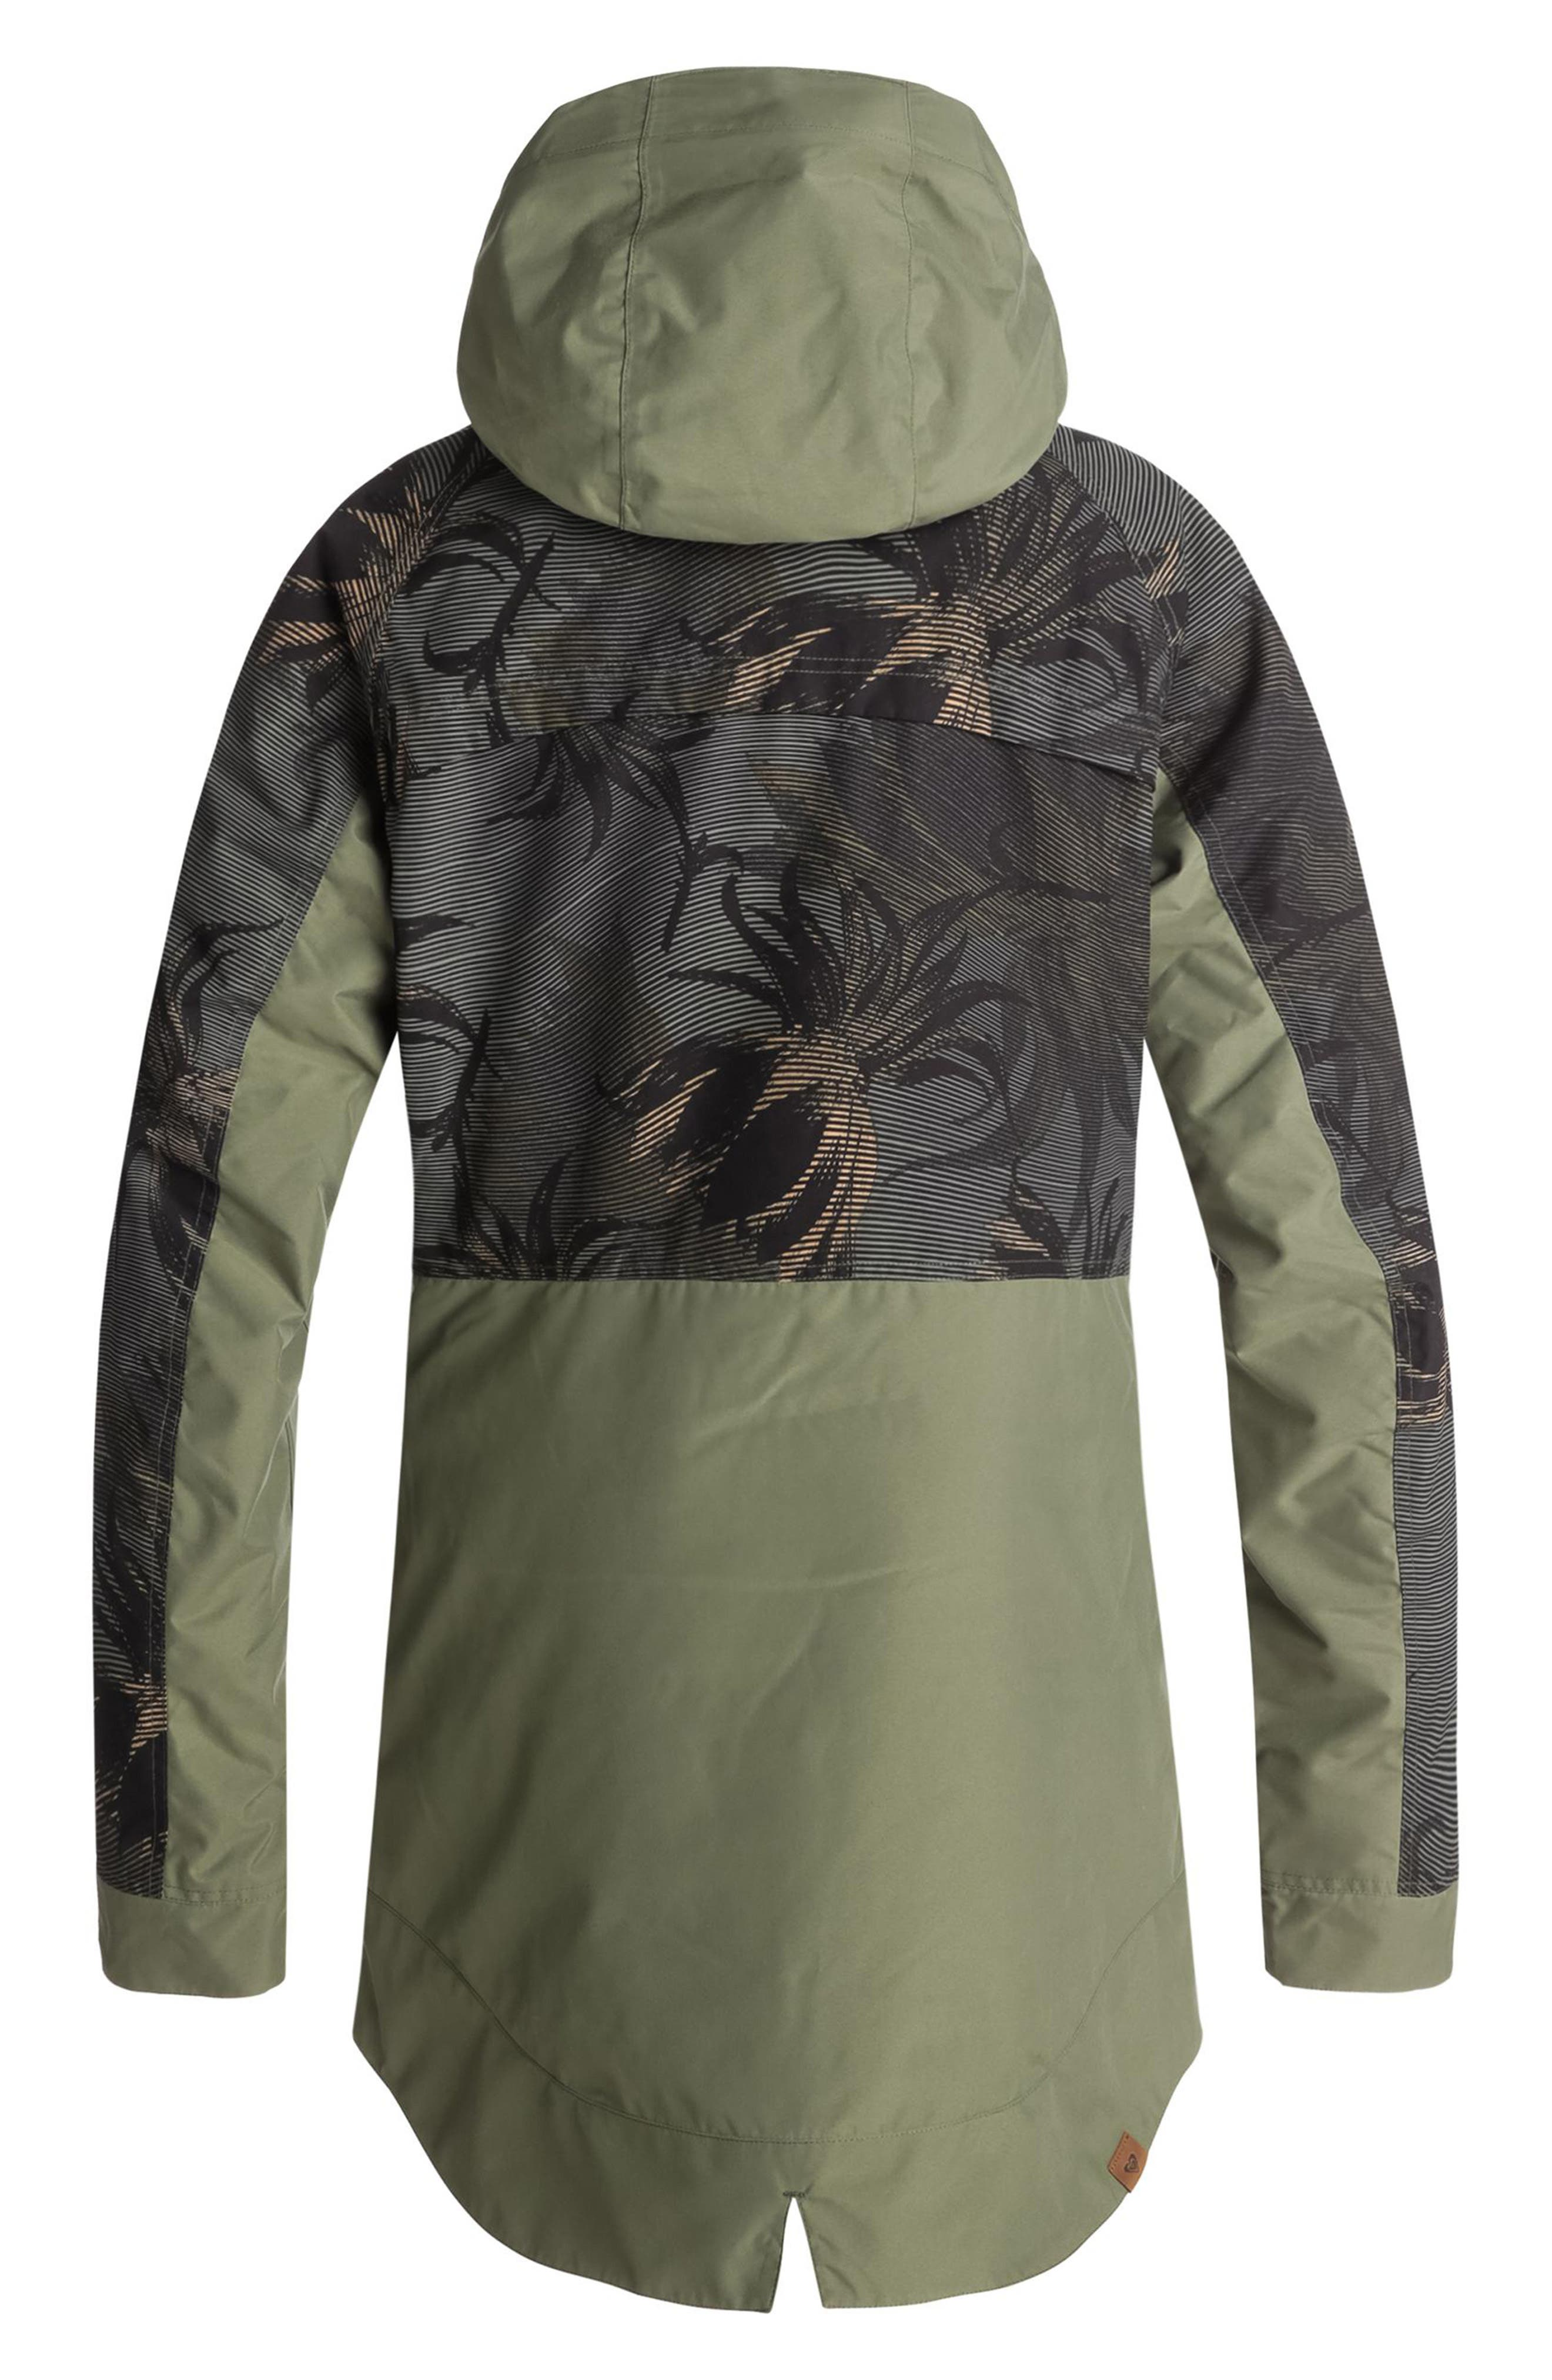 Waterproof DryFlight<sup>®</sup> Thinsulate<sup>®</sup> Insulated Snow Jacket,                             Alternate thumbnail 2, color,                             FOUR LEAF CLOVER-SWELL FLOWERS